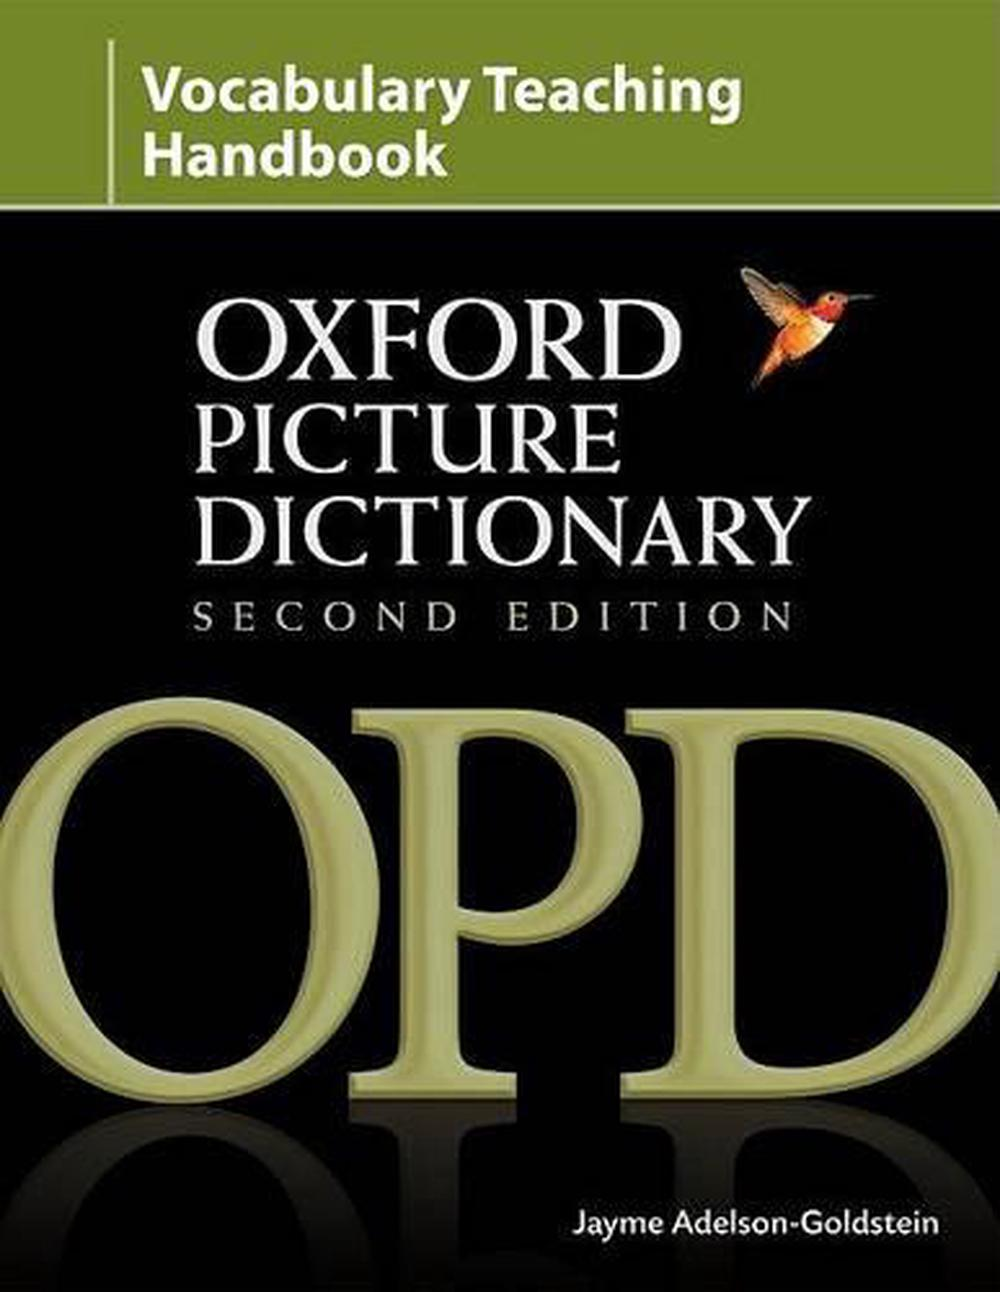 Oxford Picture Dictionary: Vocabulary Teaching Handbook